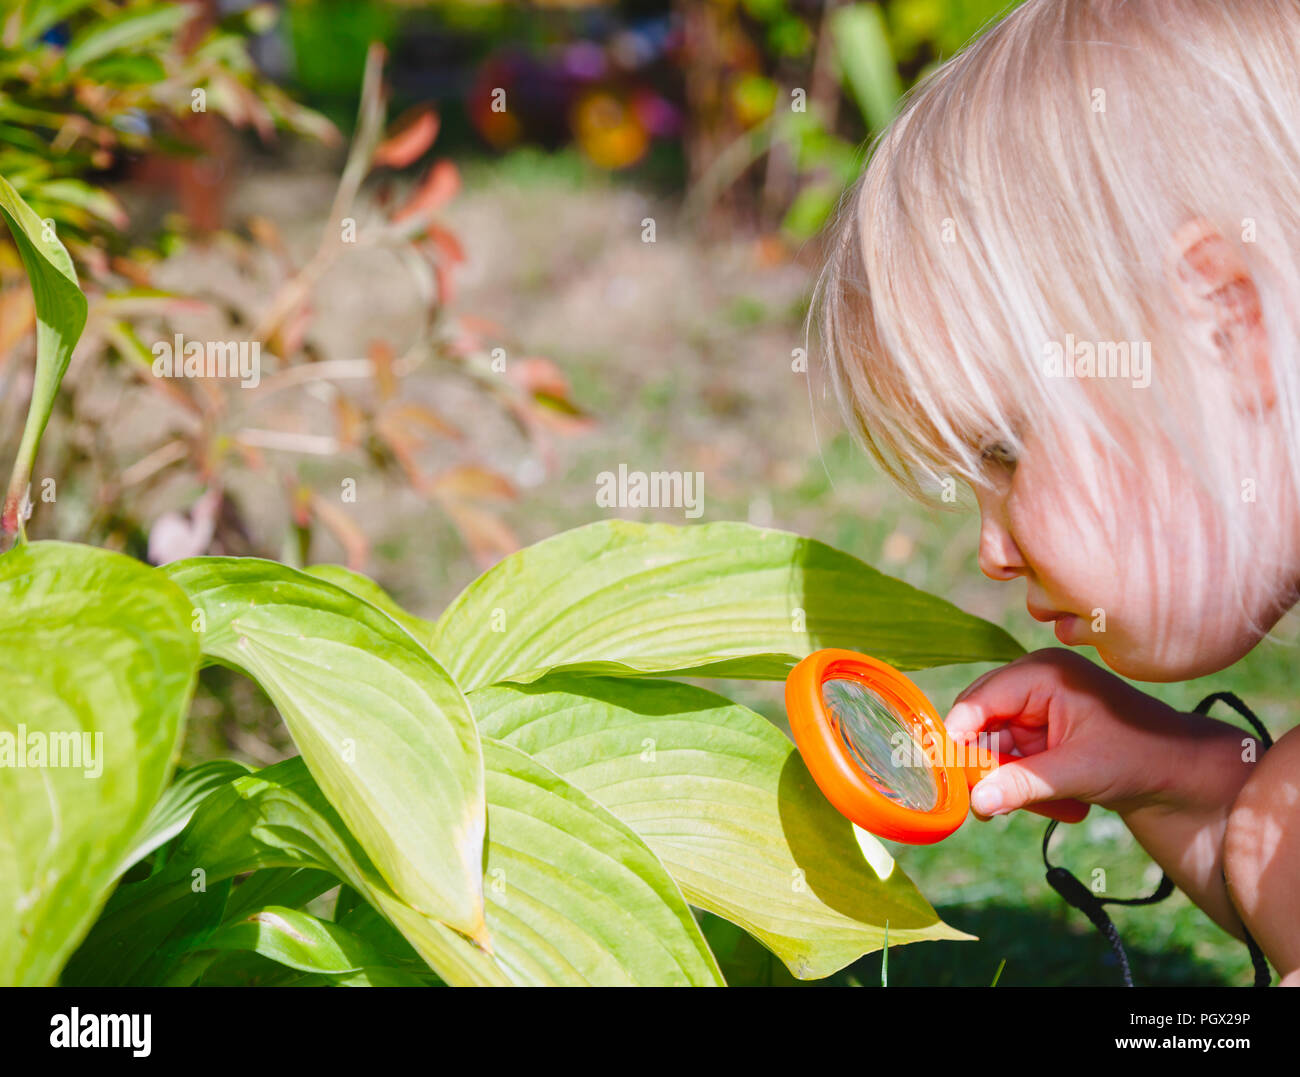 Girl Magnifying Glass Flower Stock Photos Amp Girl Magnifying Glass Flower Stock Images